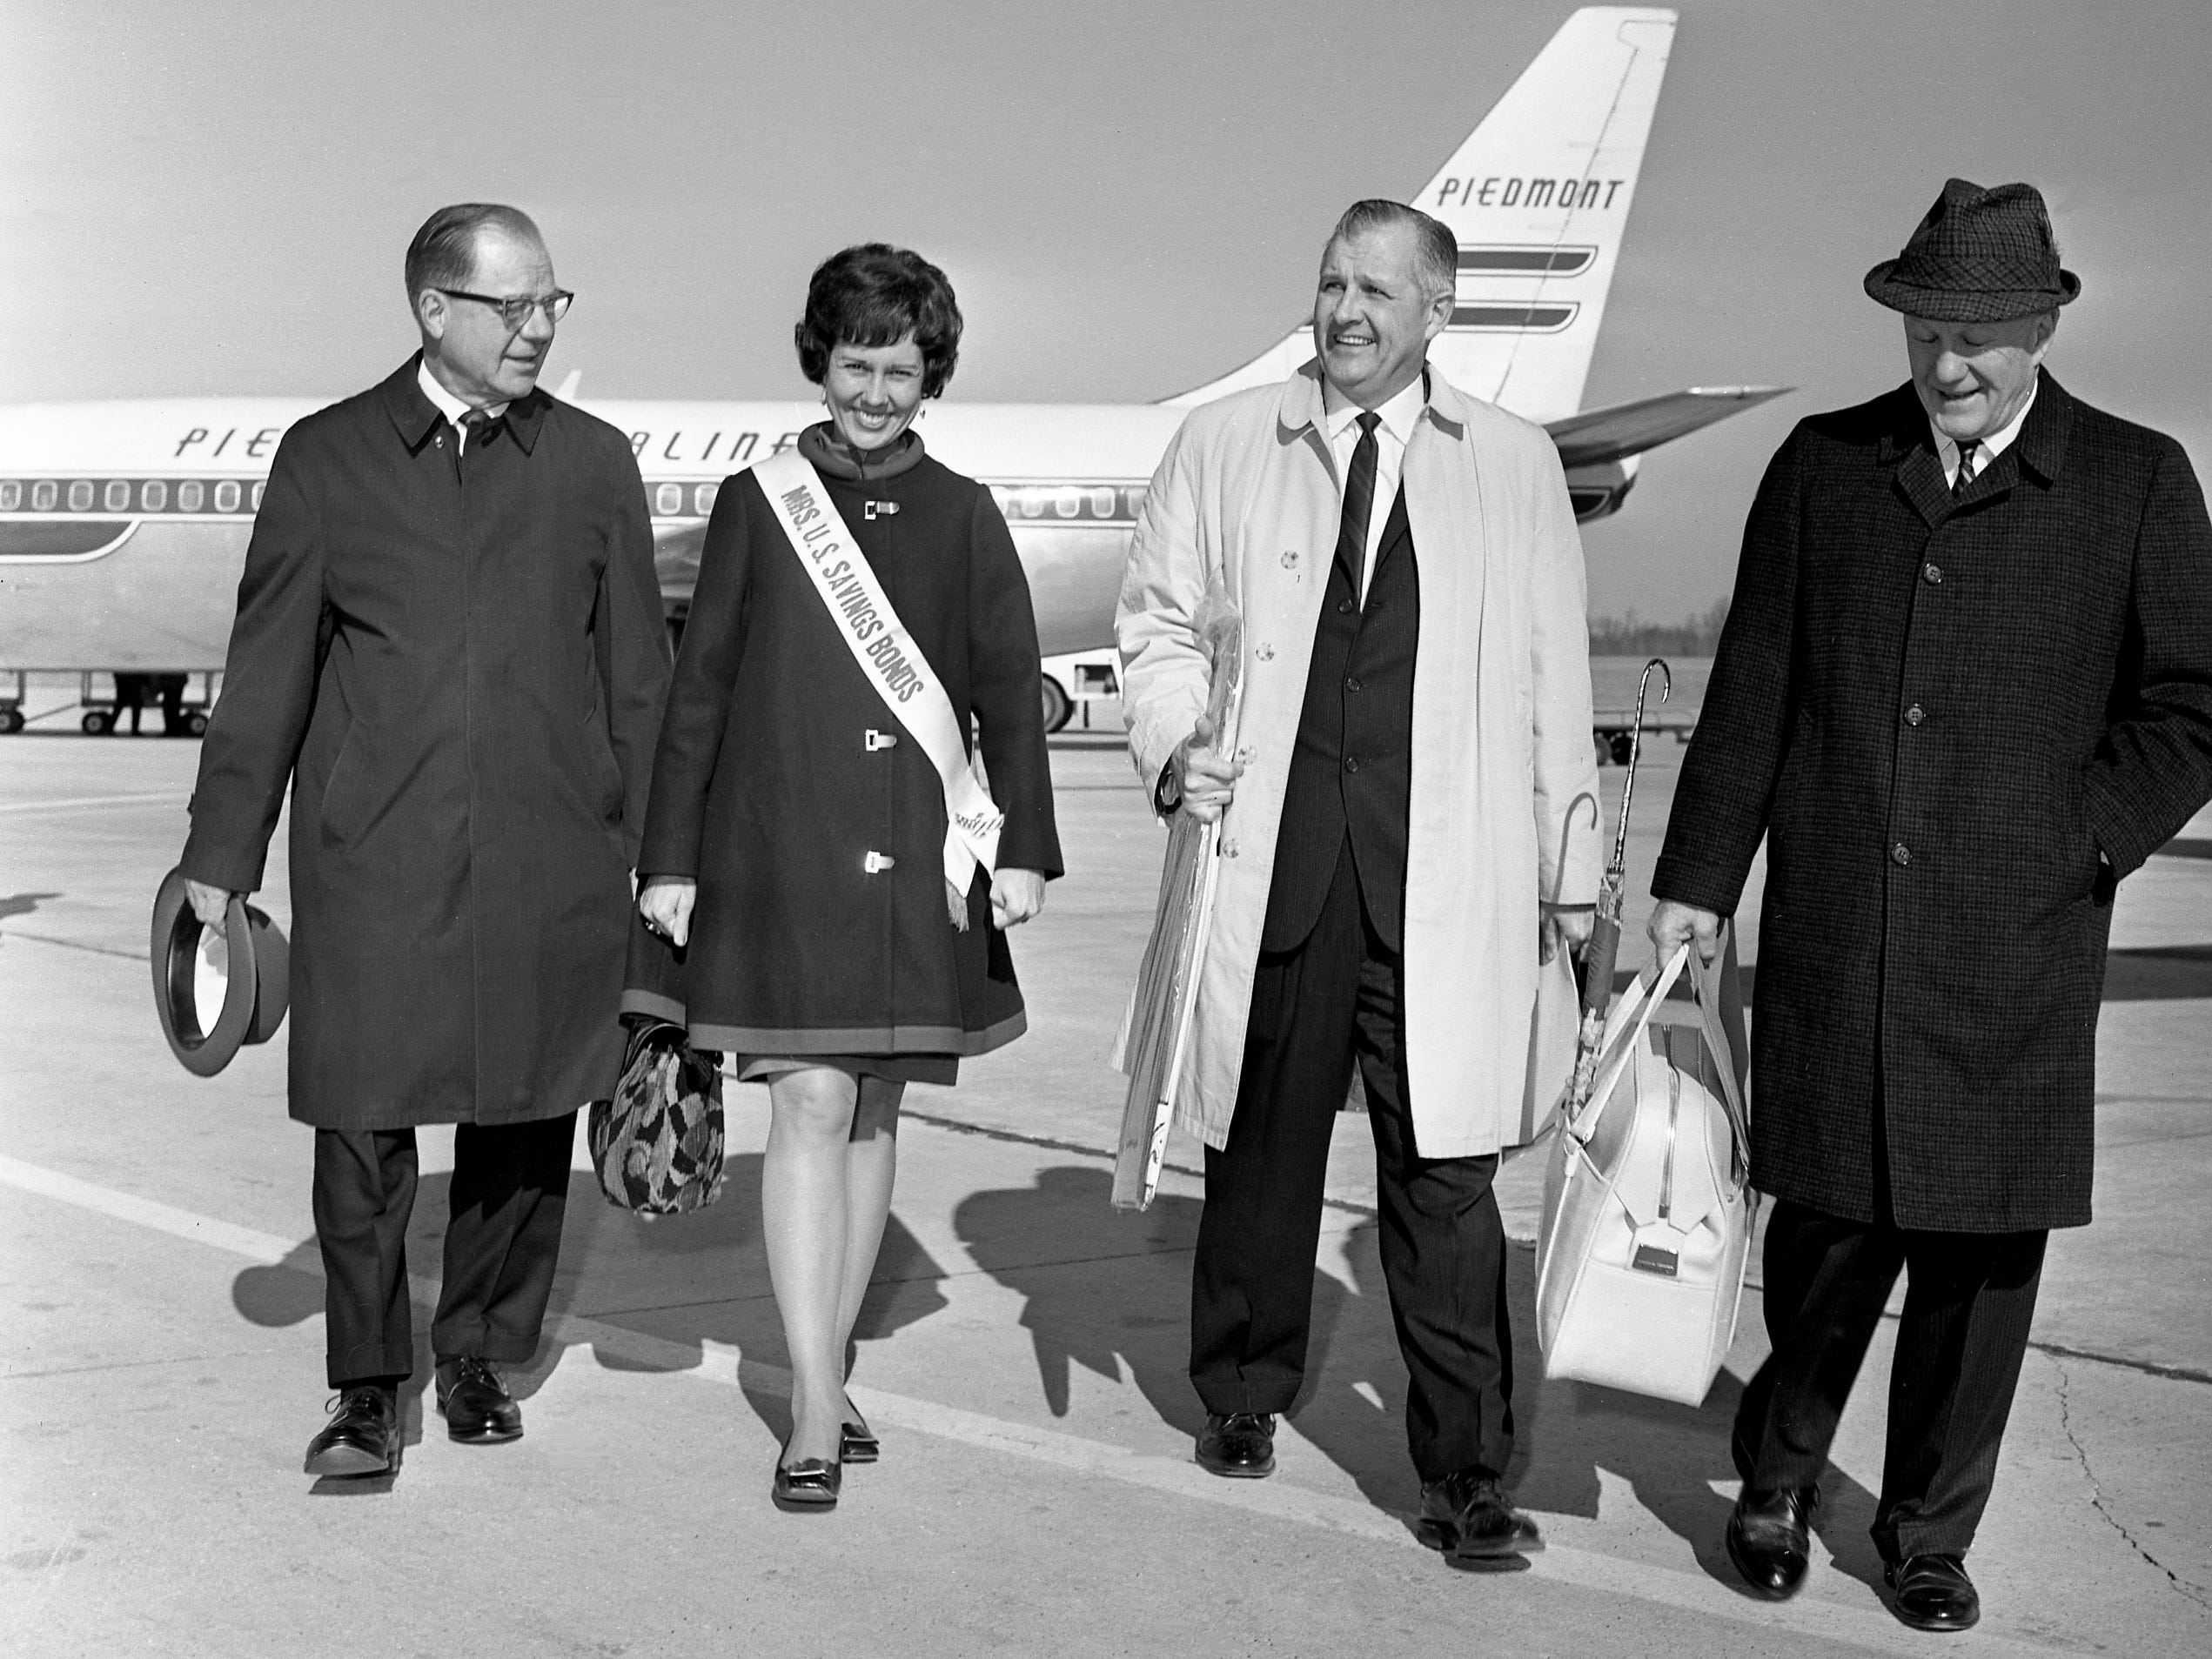 Joy Berlemann, second from left, Miss U.S. Savings Bonds of 1969, is surrounded by local savings bonds officials after arriving at Nashville Municipal Airport on Jan. 10, 1969, to help boost Nashville's bond campaign. With her are Postmaster Lewis Moore, left, J.P. Lawrence and Norvell S. Rose.